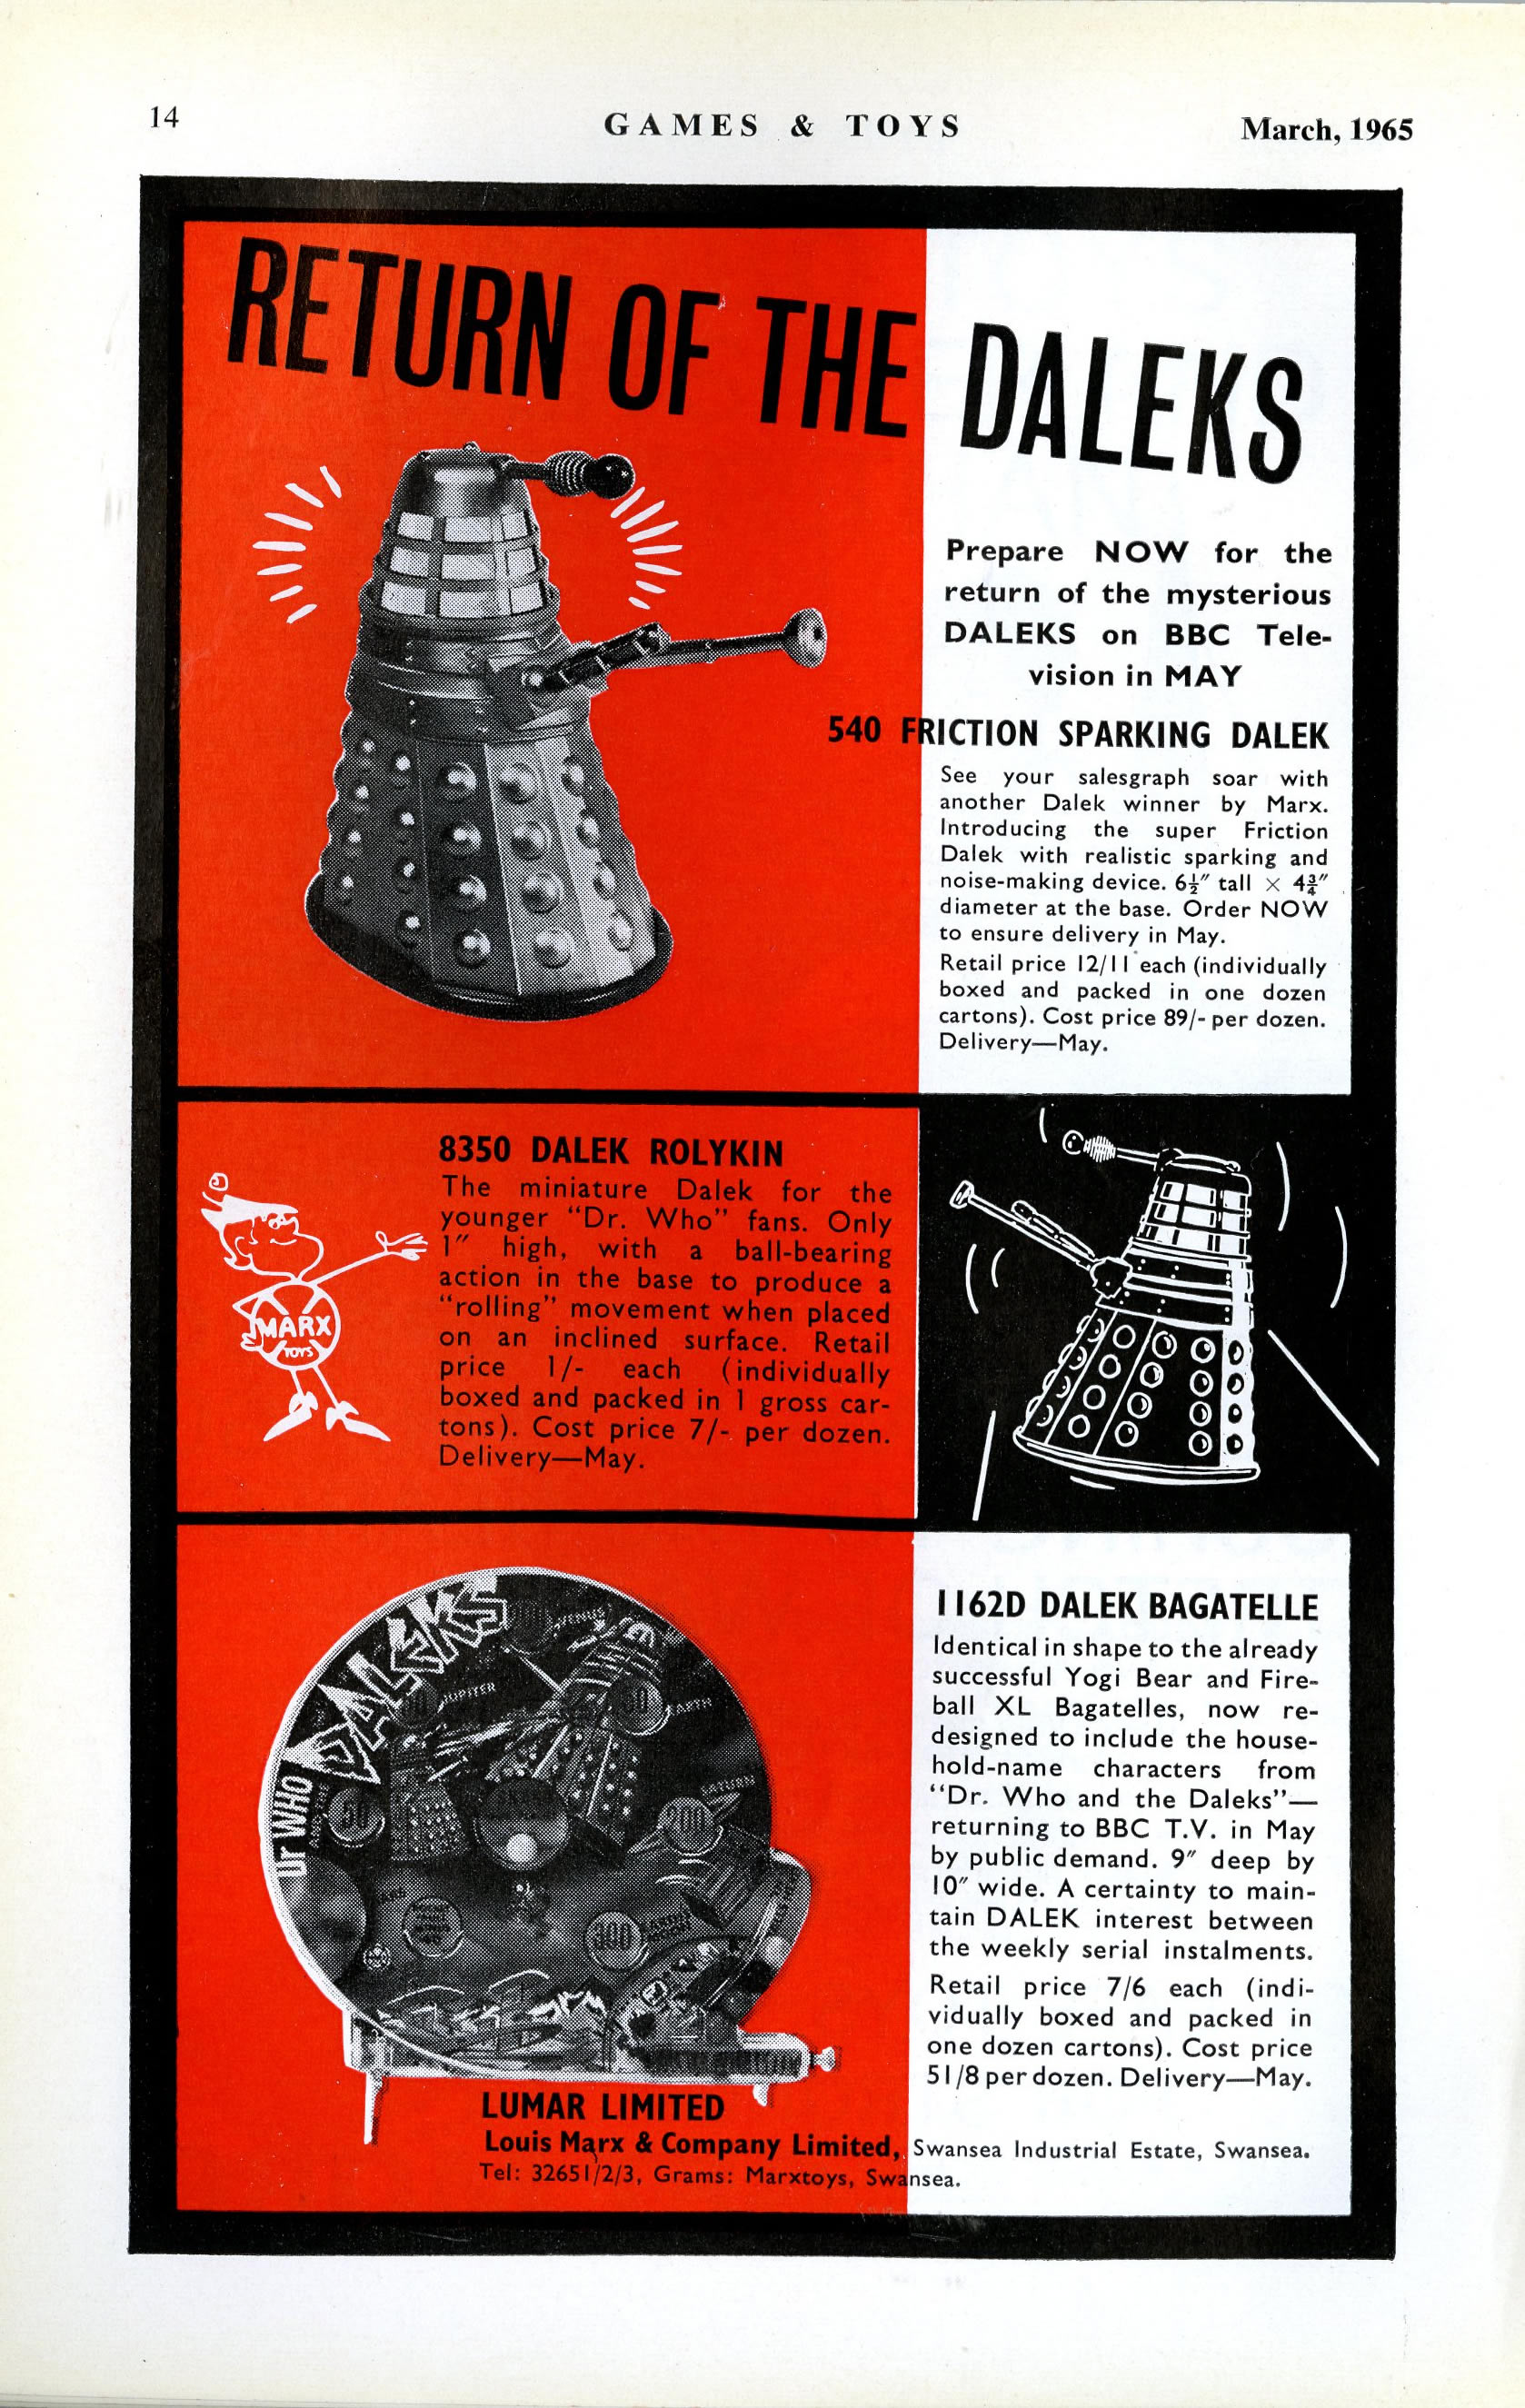 Games & Toys, March 1965, ad. for Louis Marx and Company Ltd. friction-drive Daleks, Dalek Rolykins, and Dalek bagatelles